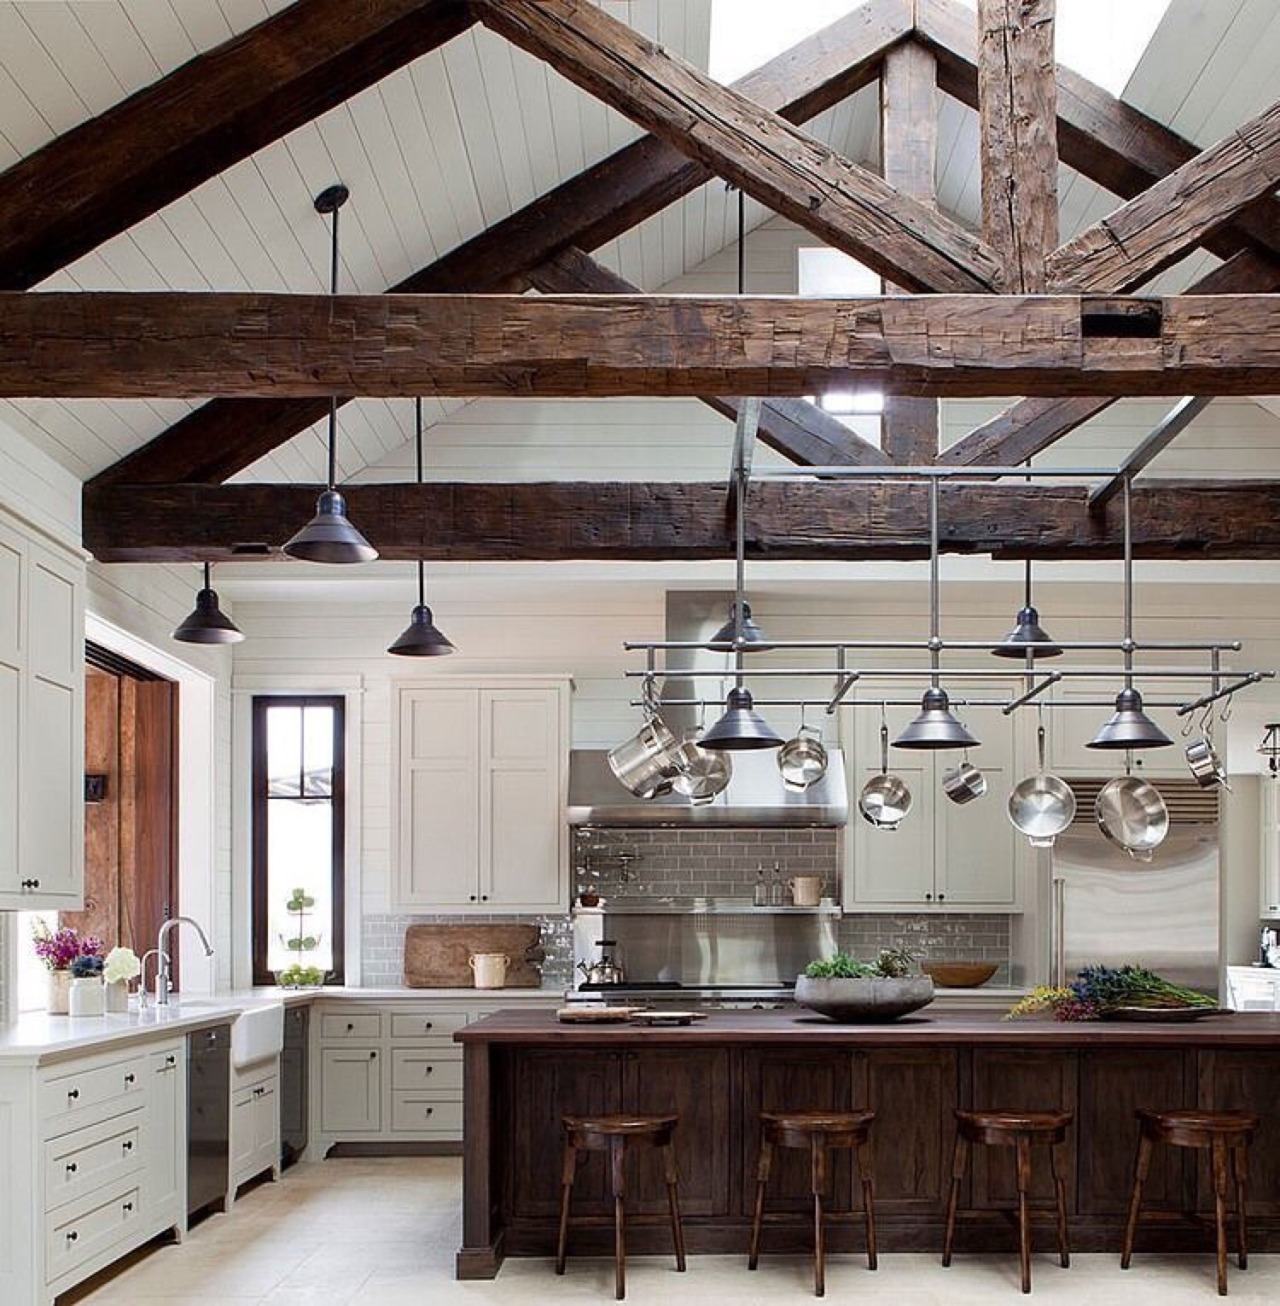 A Hefty Island Resonates with these Dominant Ceiling Trusses